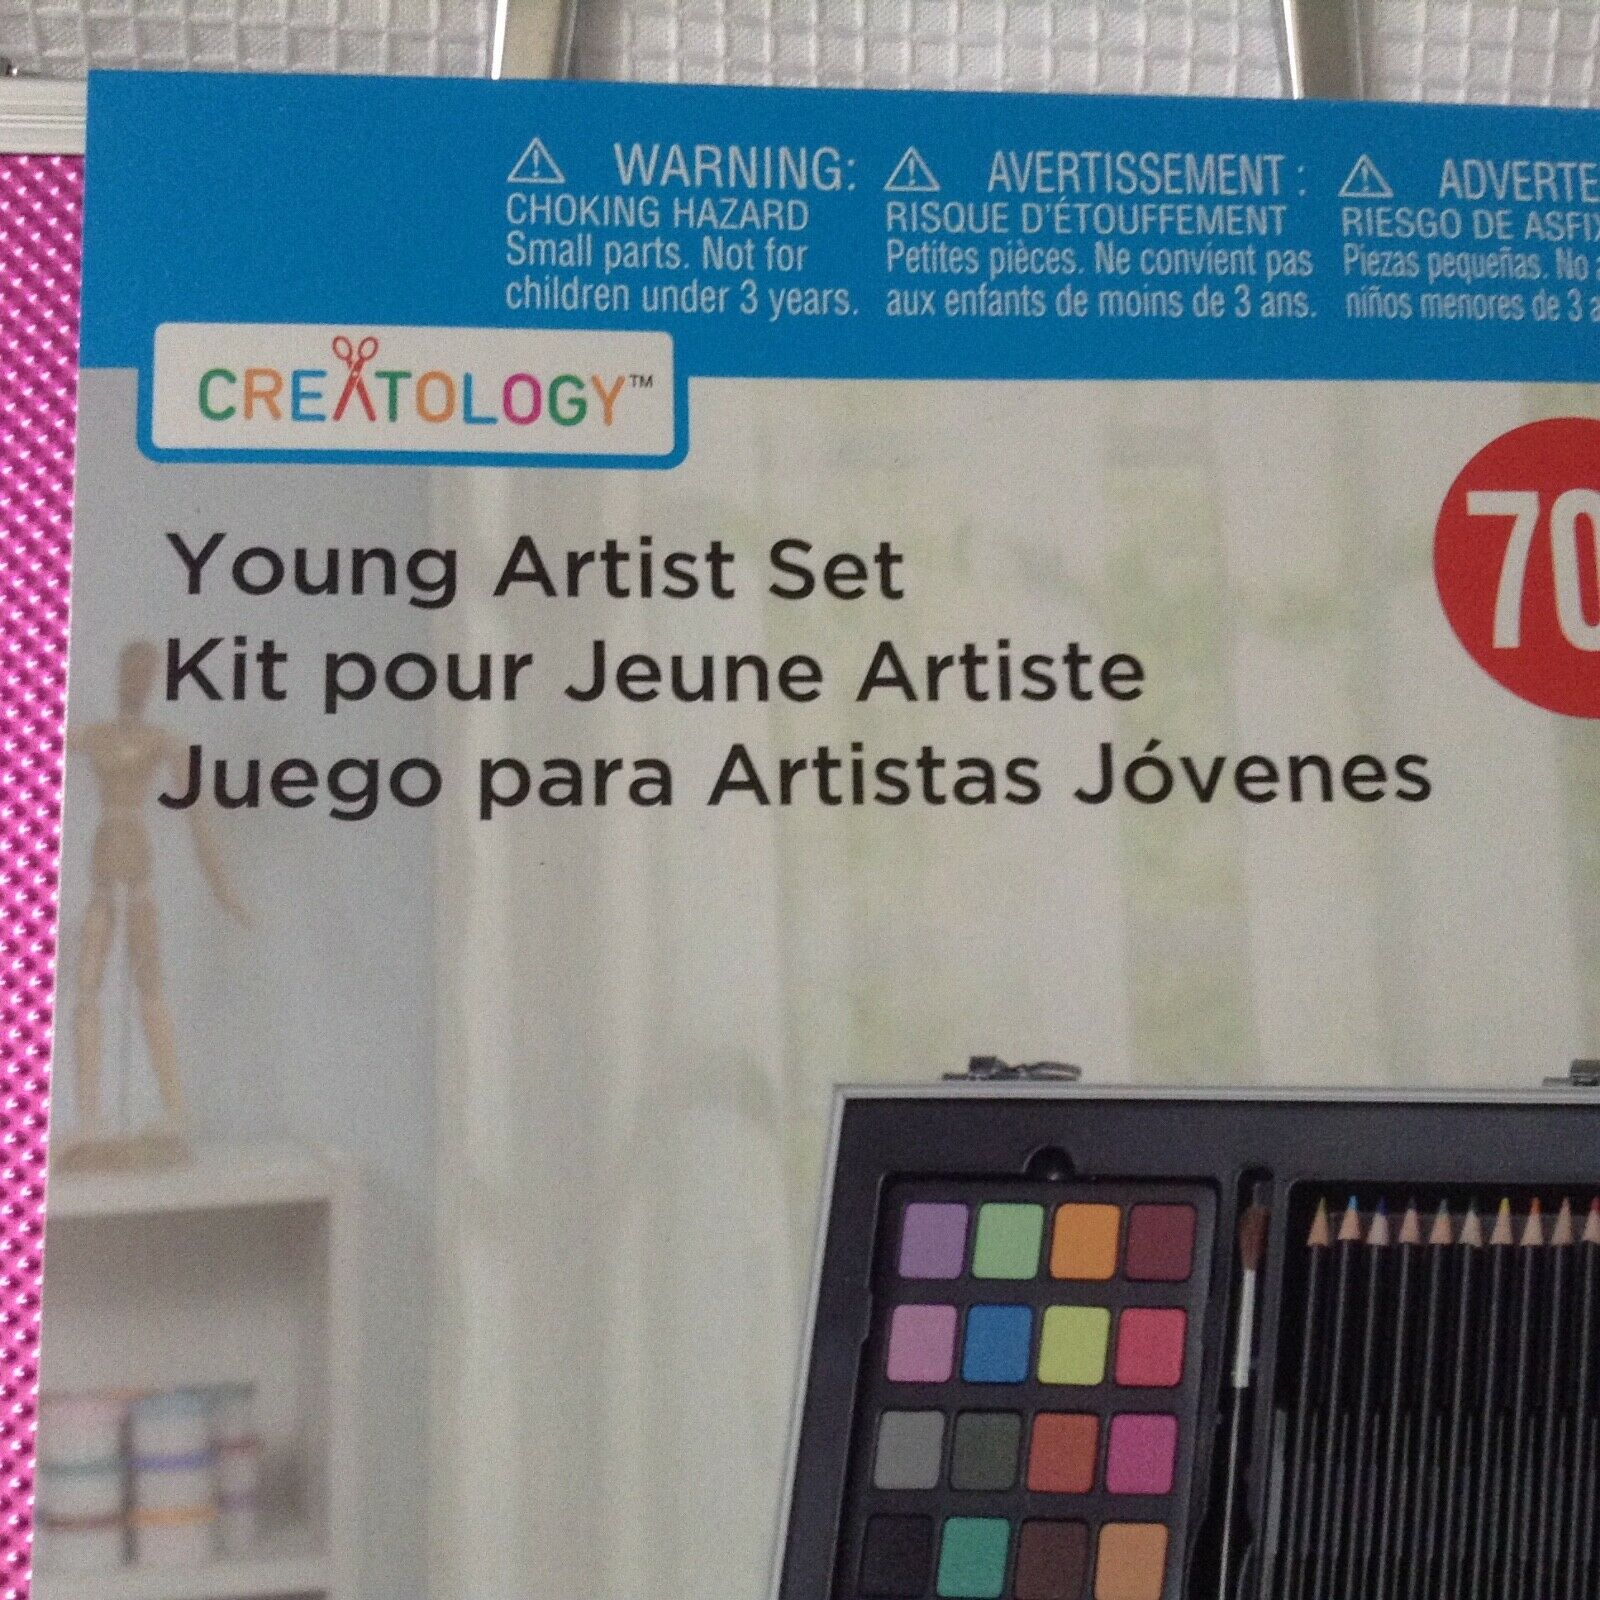 ART SET BY CREATOLOGY YOUNG ARTIST SET 70 PIECE IN PINK CASE 8 YEARS  - $14.95